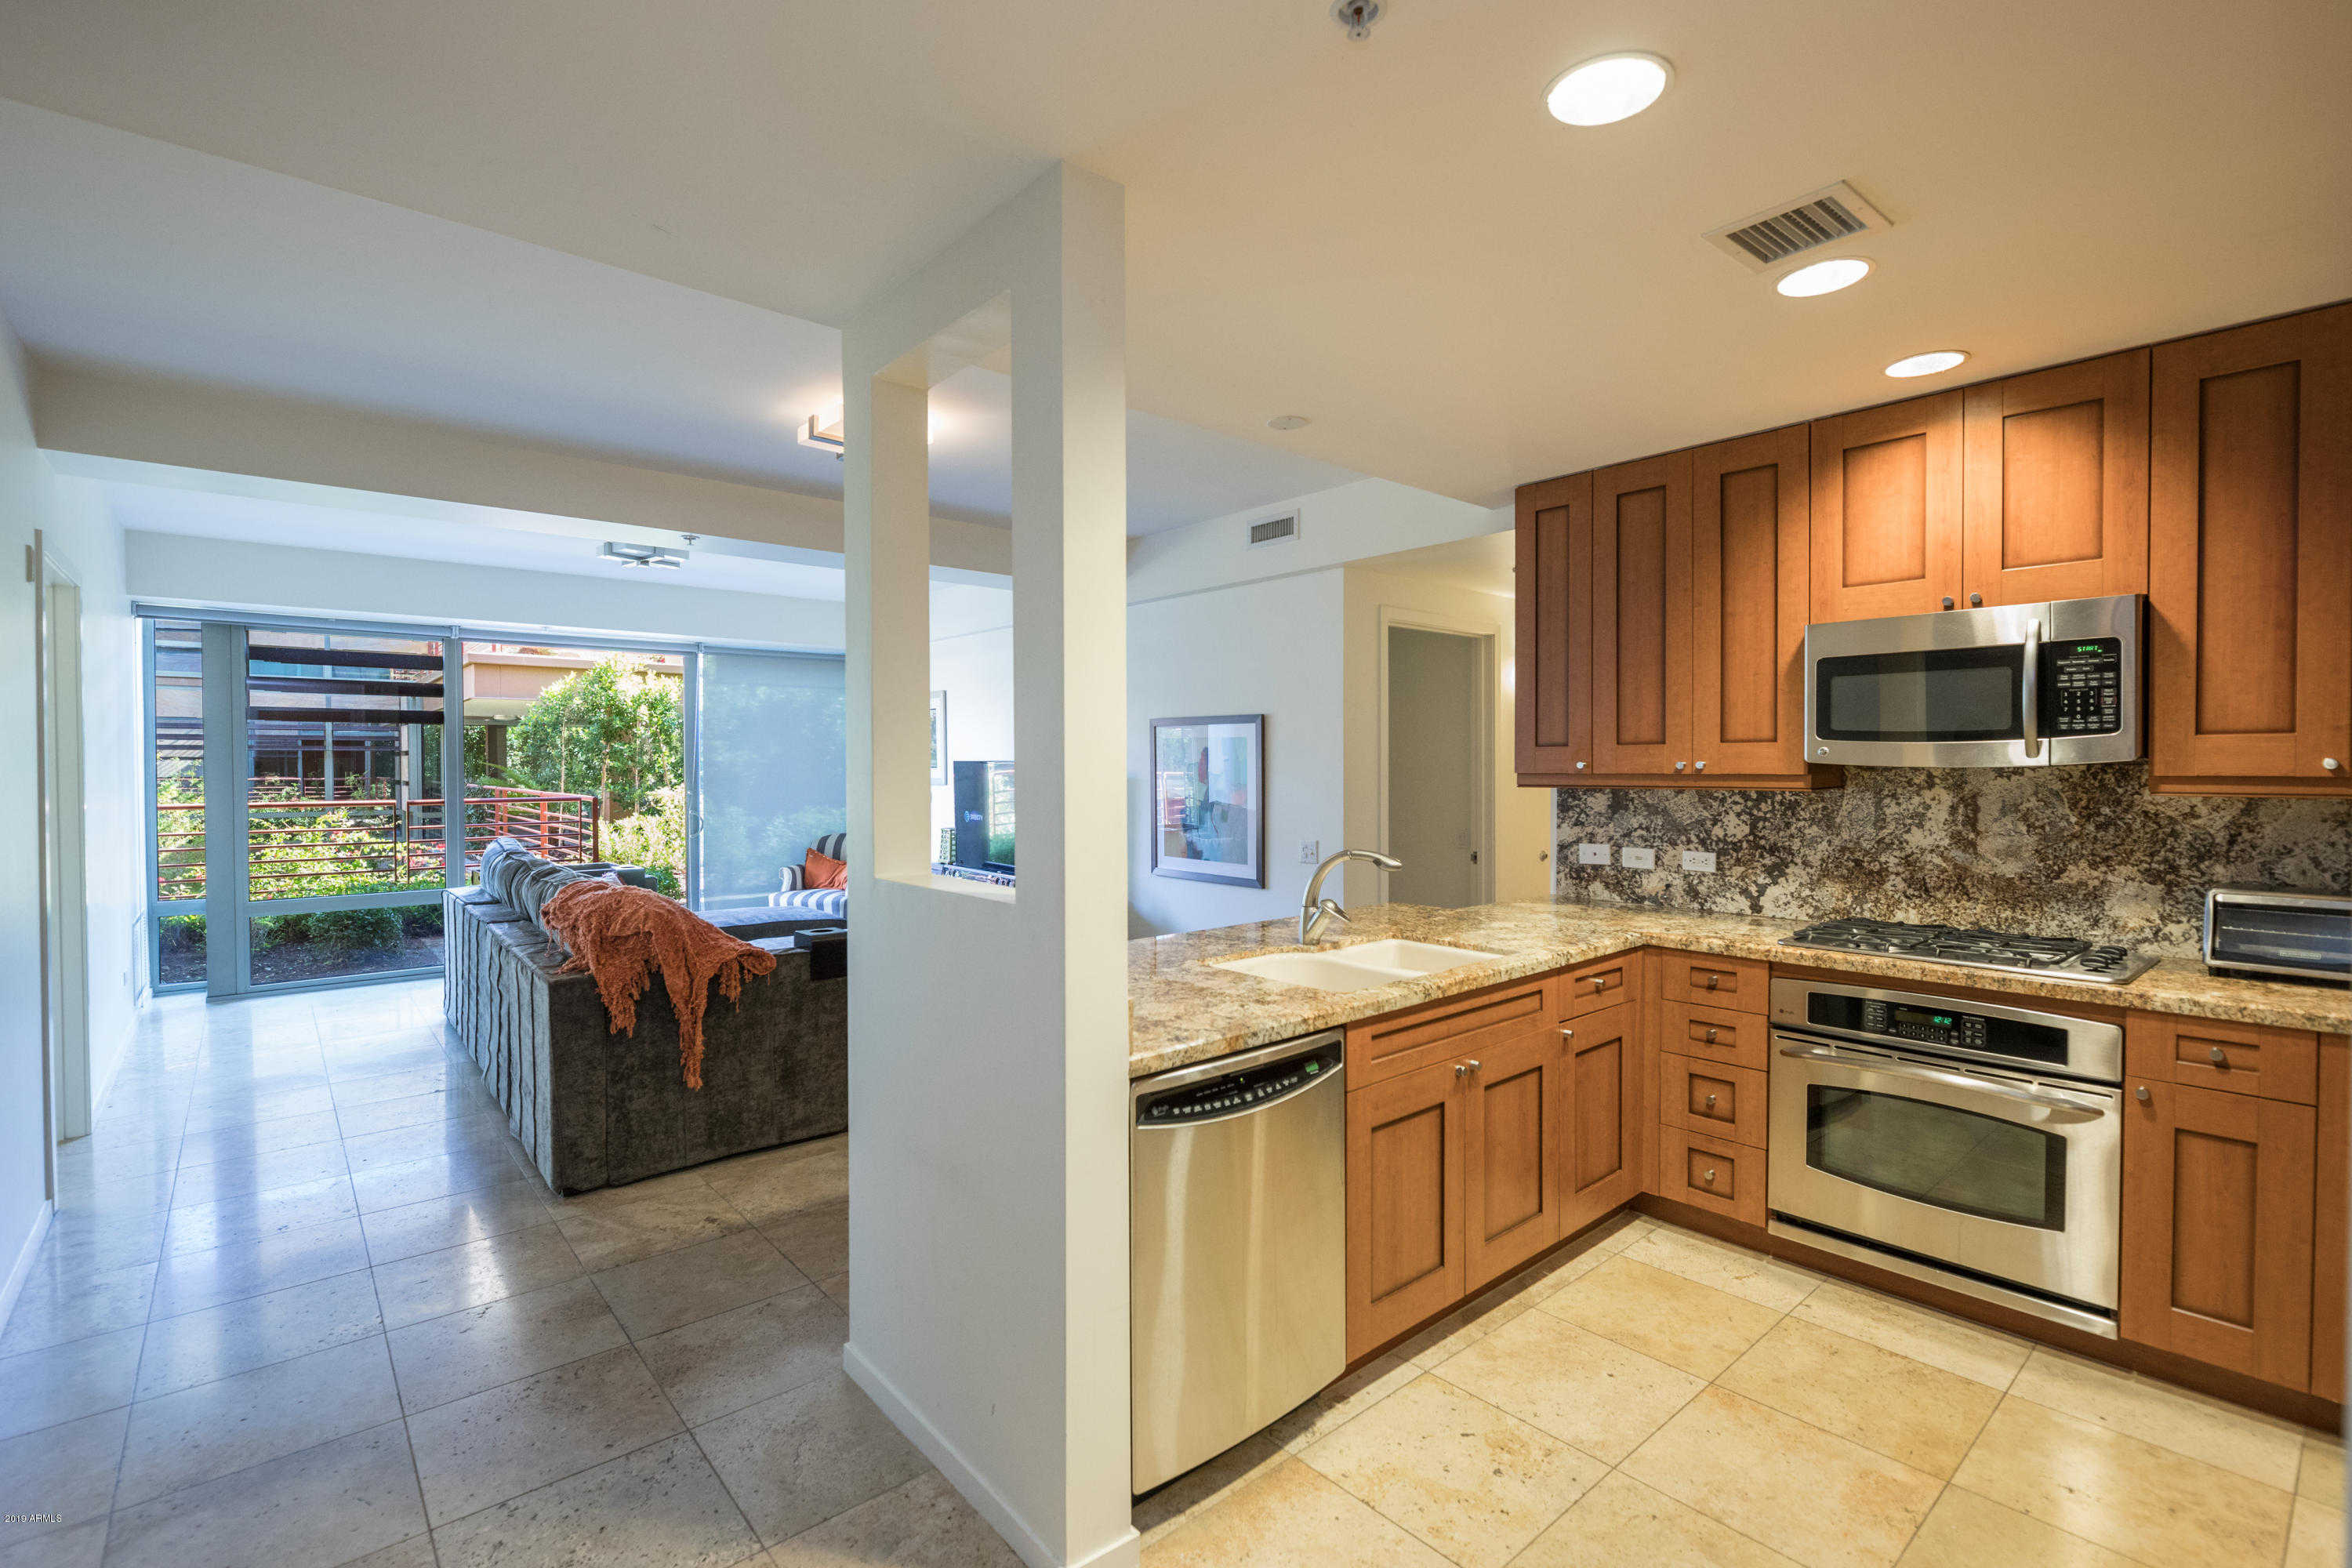 $450,000 - 2Br/2Ba -  for Sale in Optima Camelview, Scottsdale